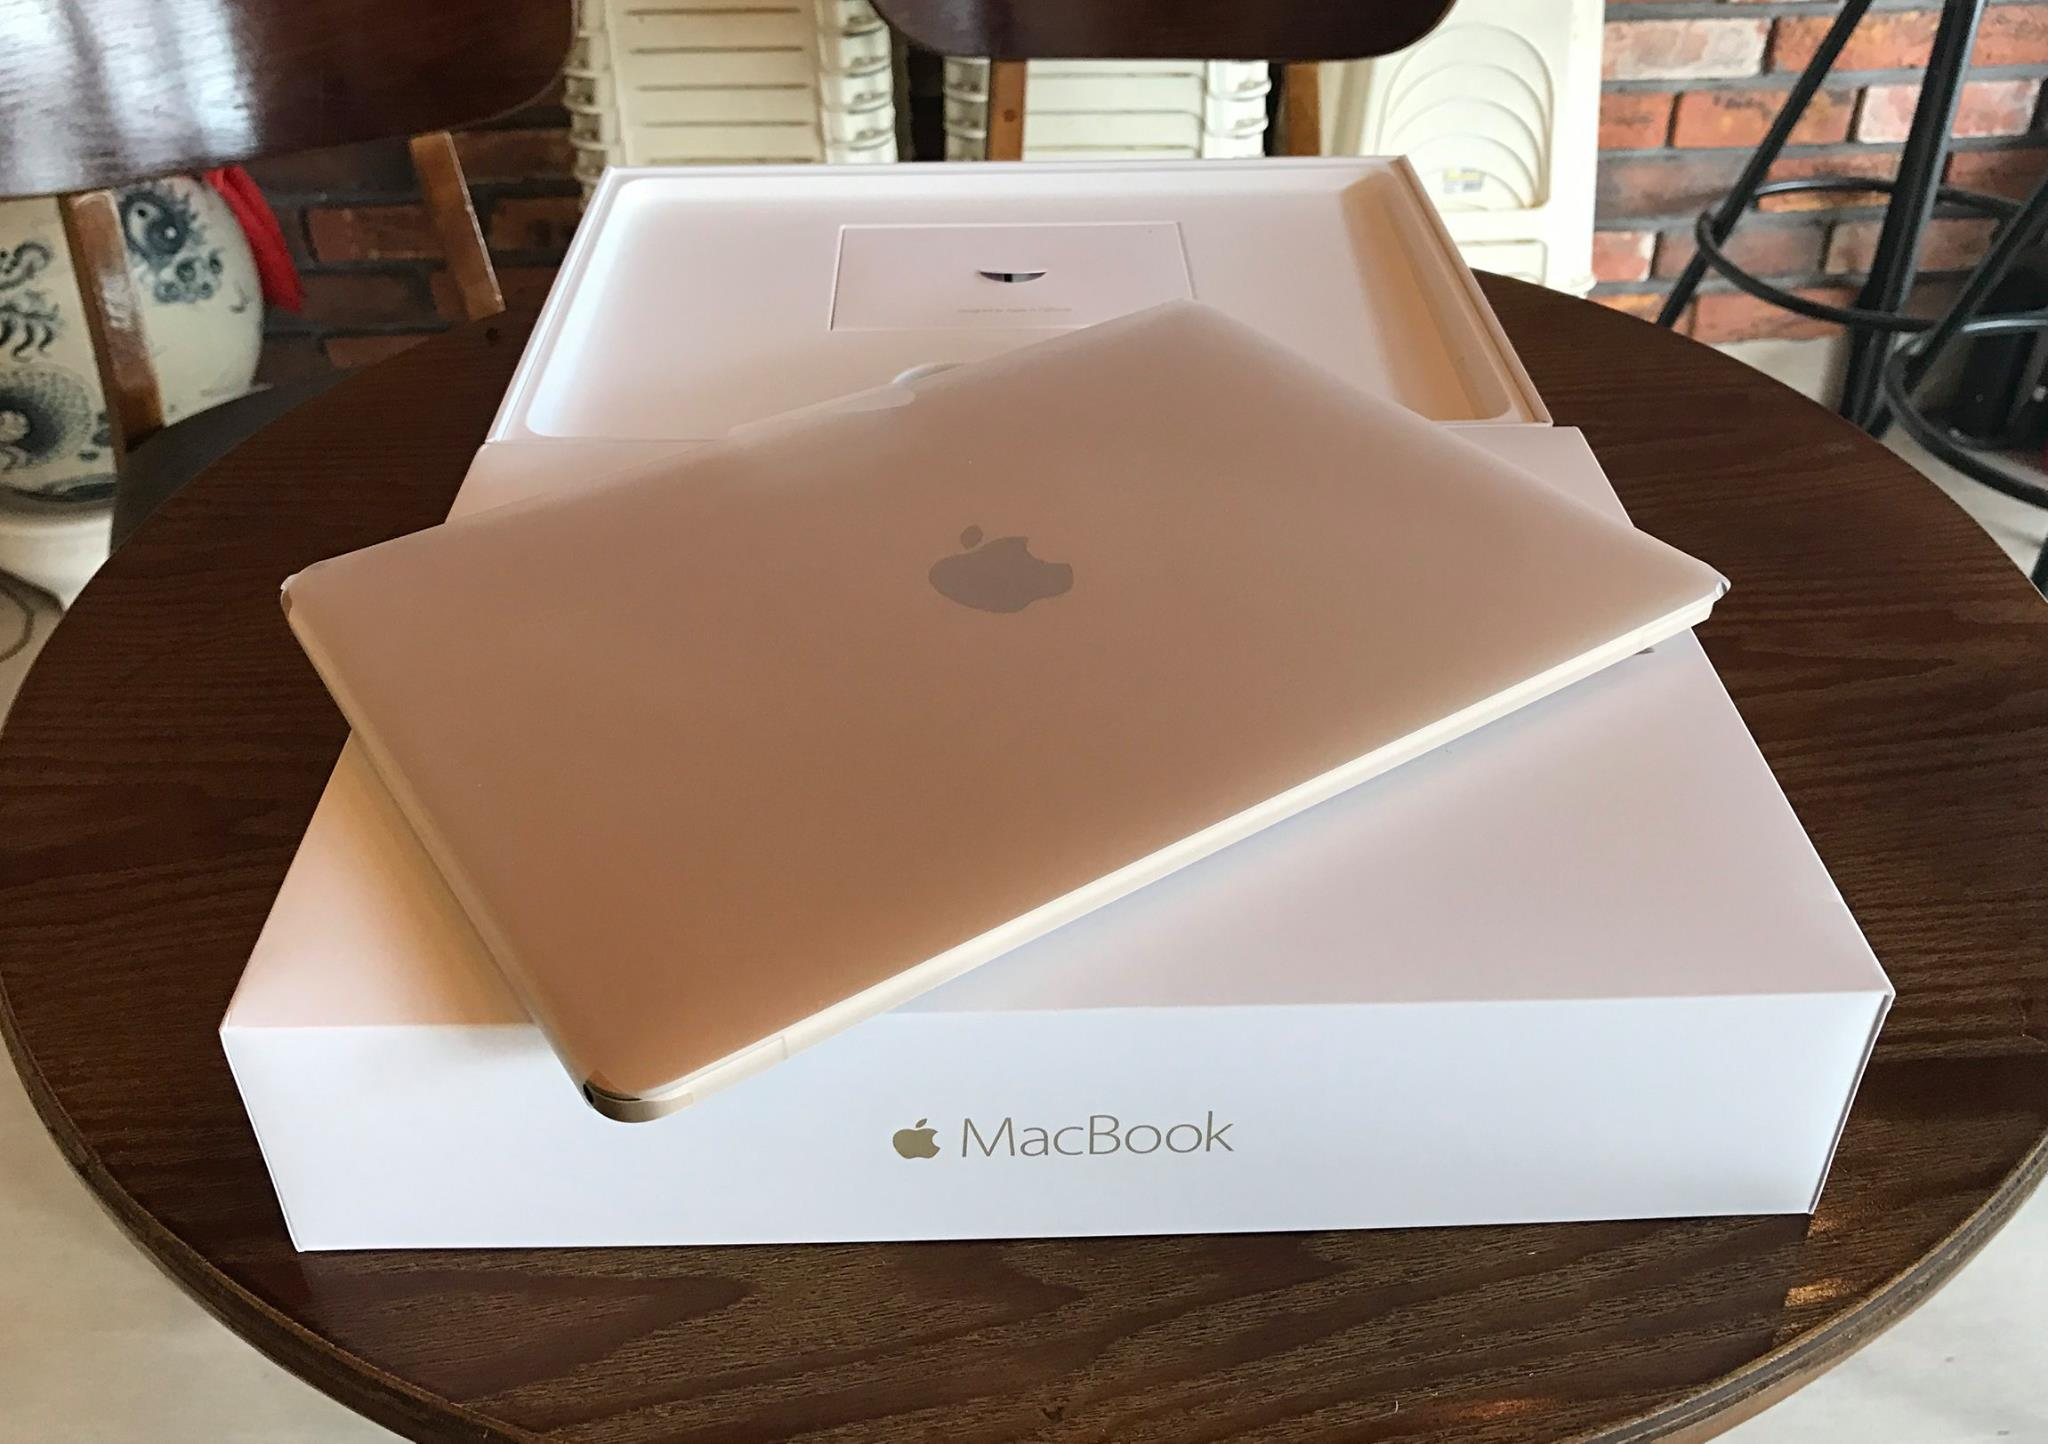 The New MacBook Retina 2016 MLHF2 12 inches